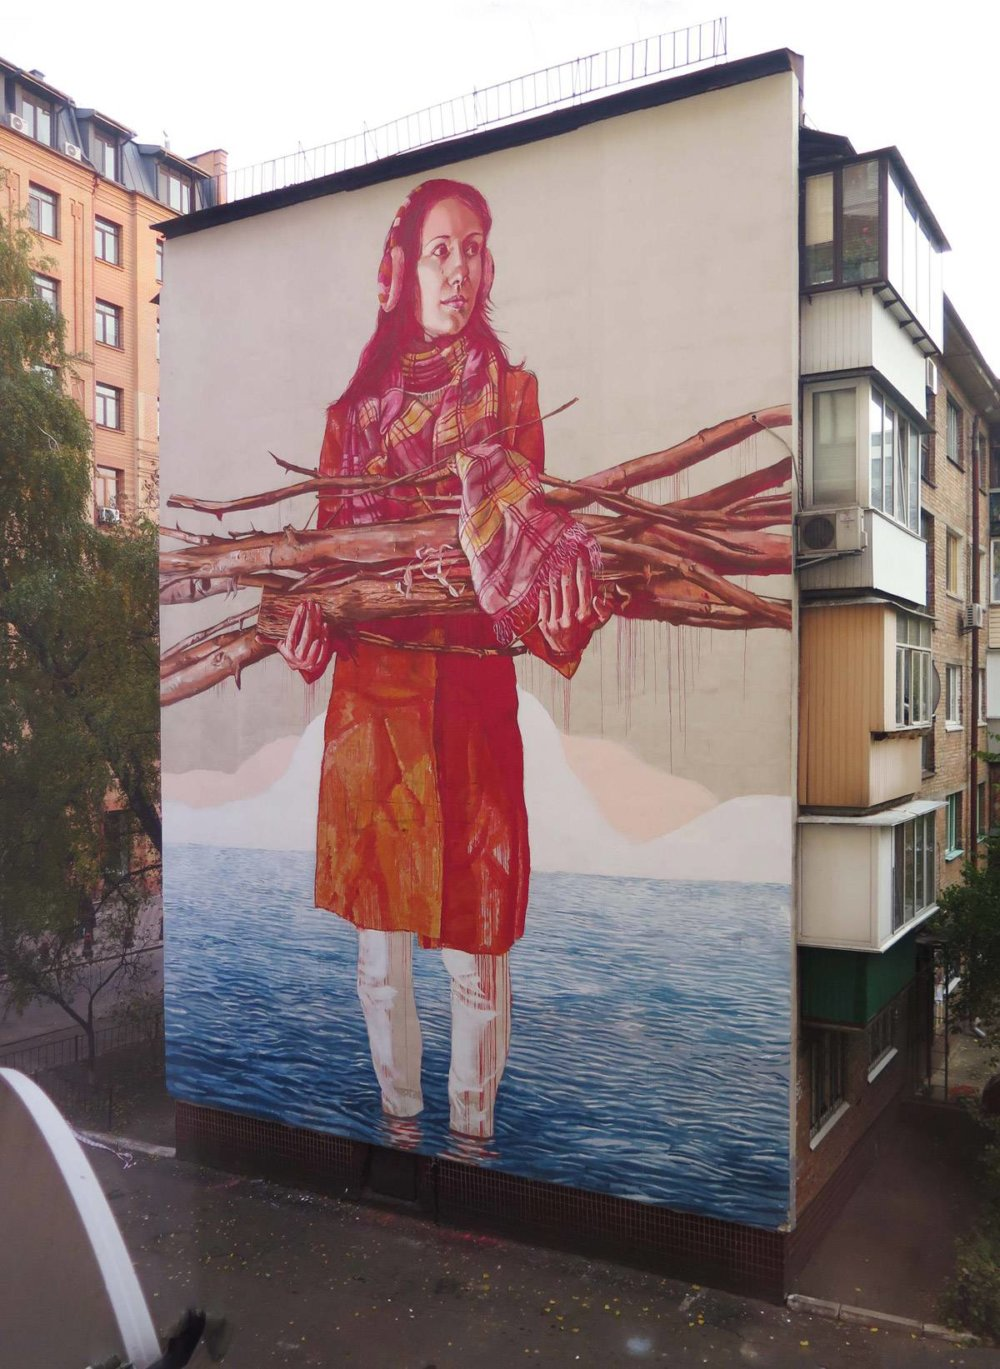 Magnificent Giant Photo Realistic Murals That Portray Political And Social Issues By Fintan Magee 2